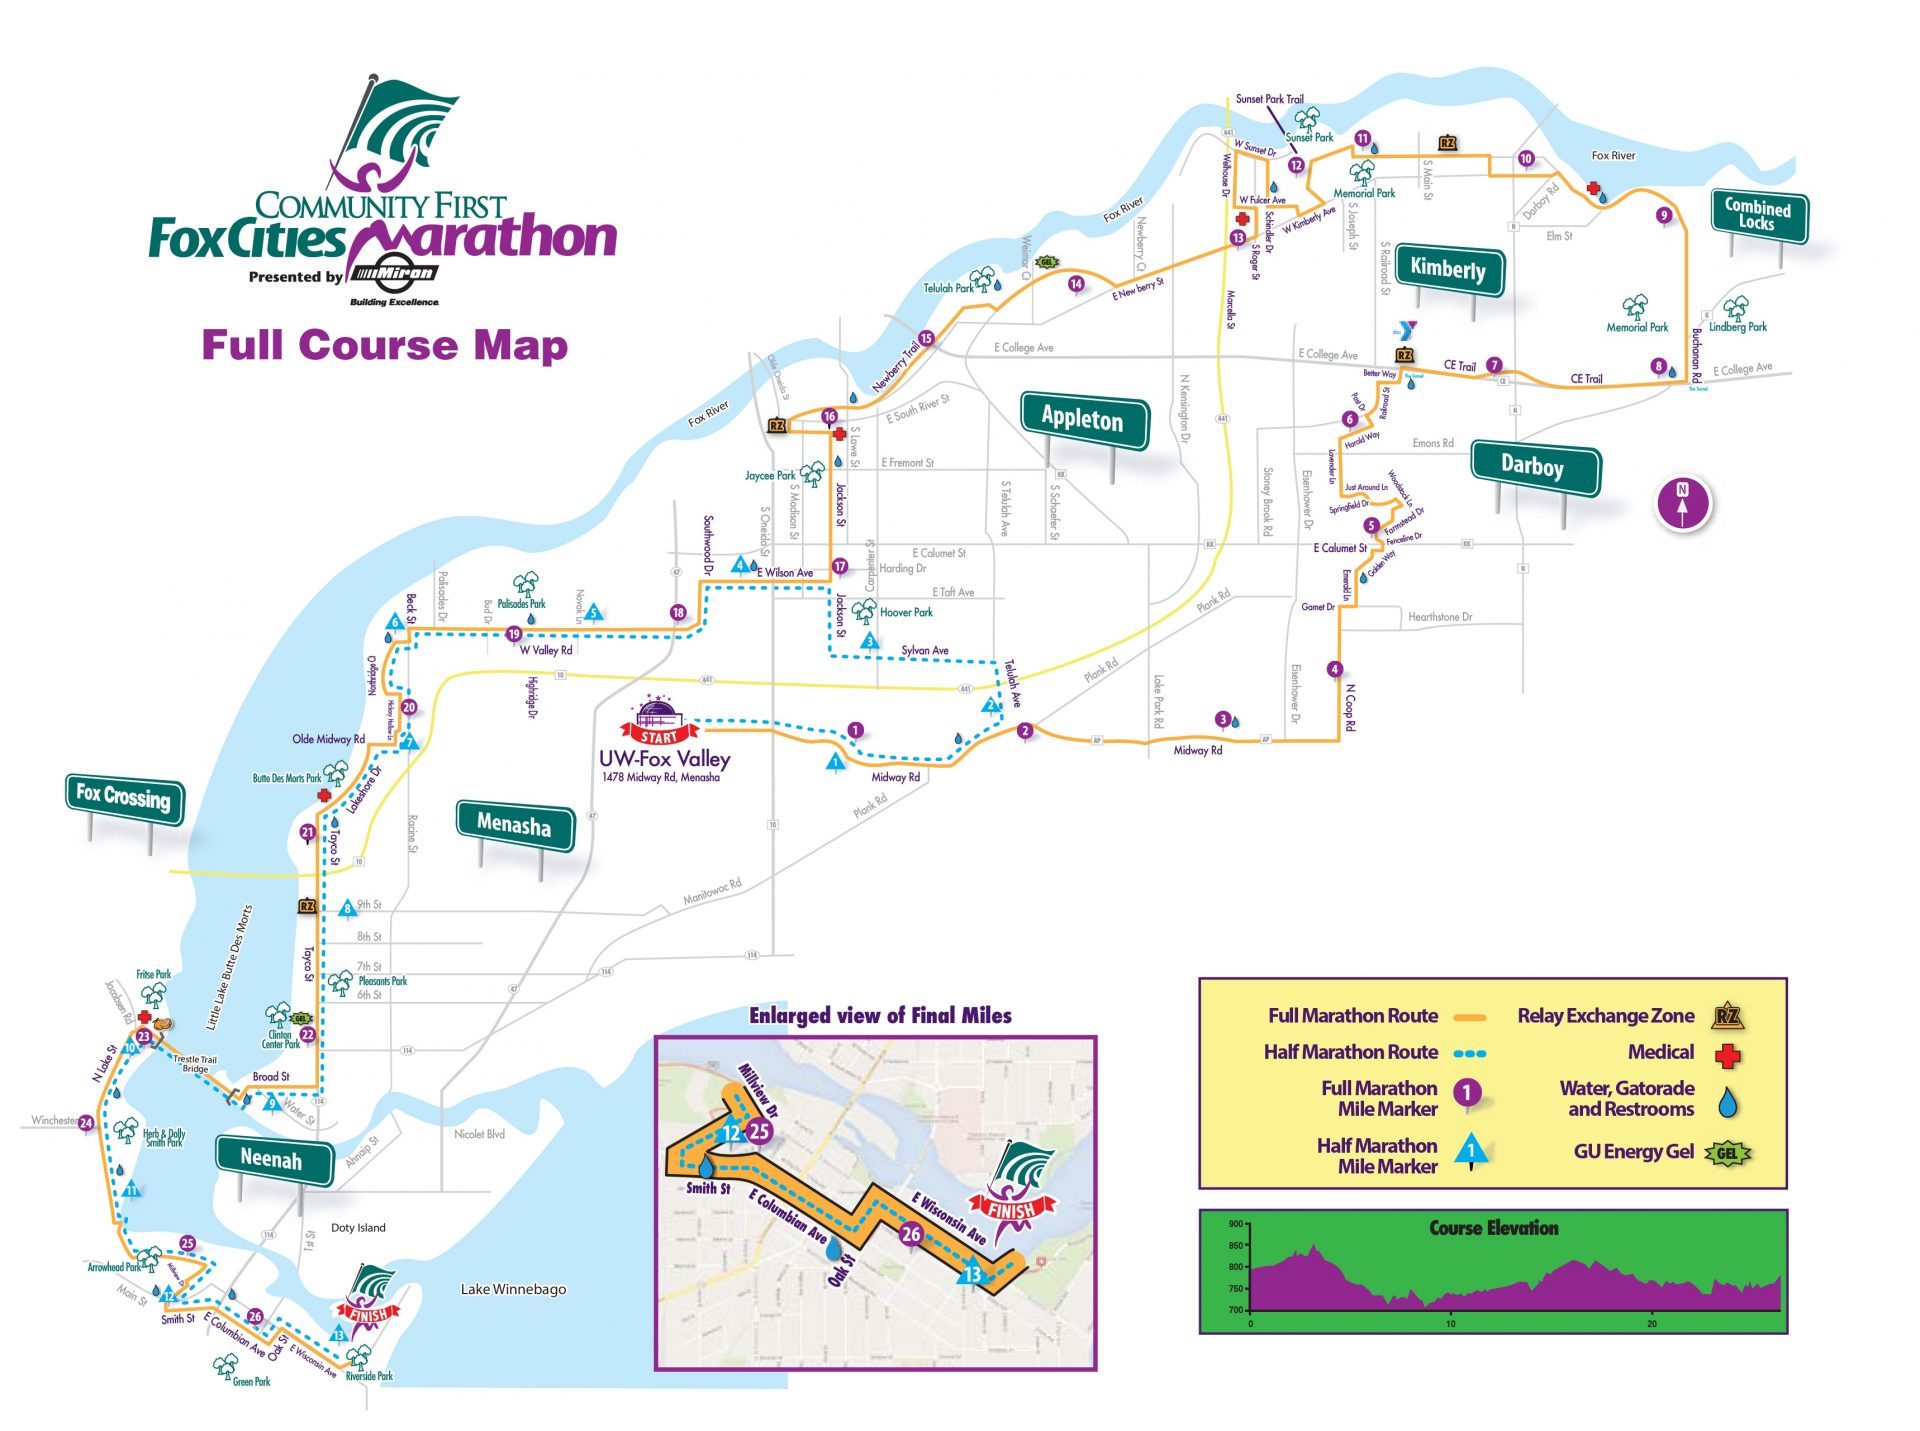 Full Course Map